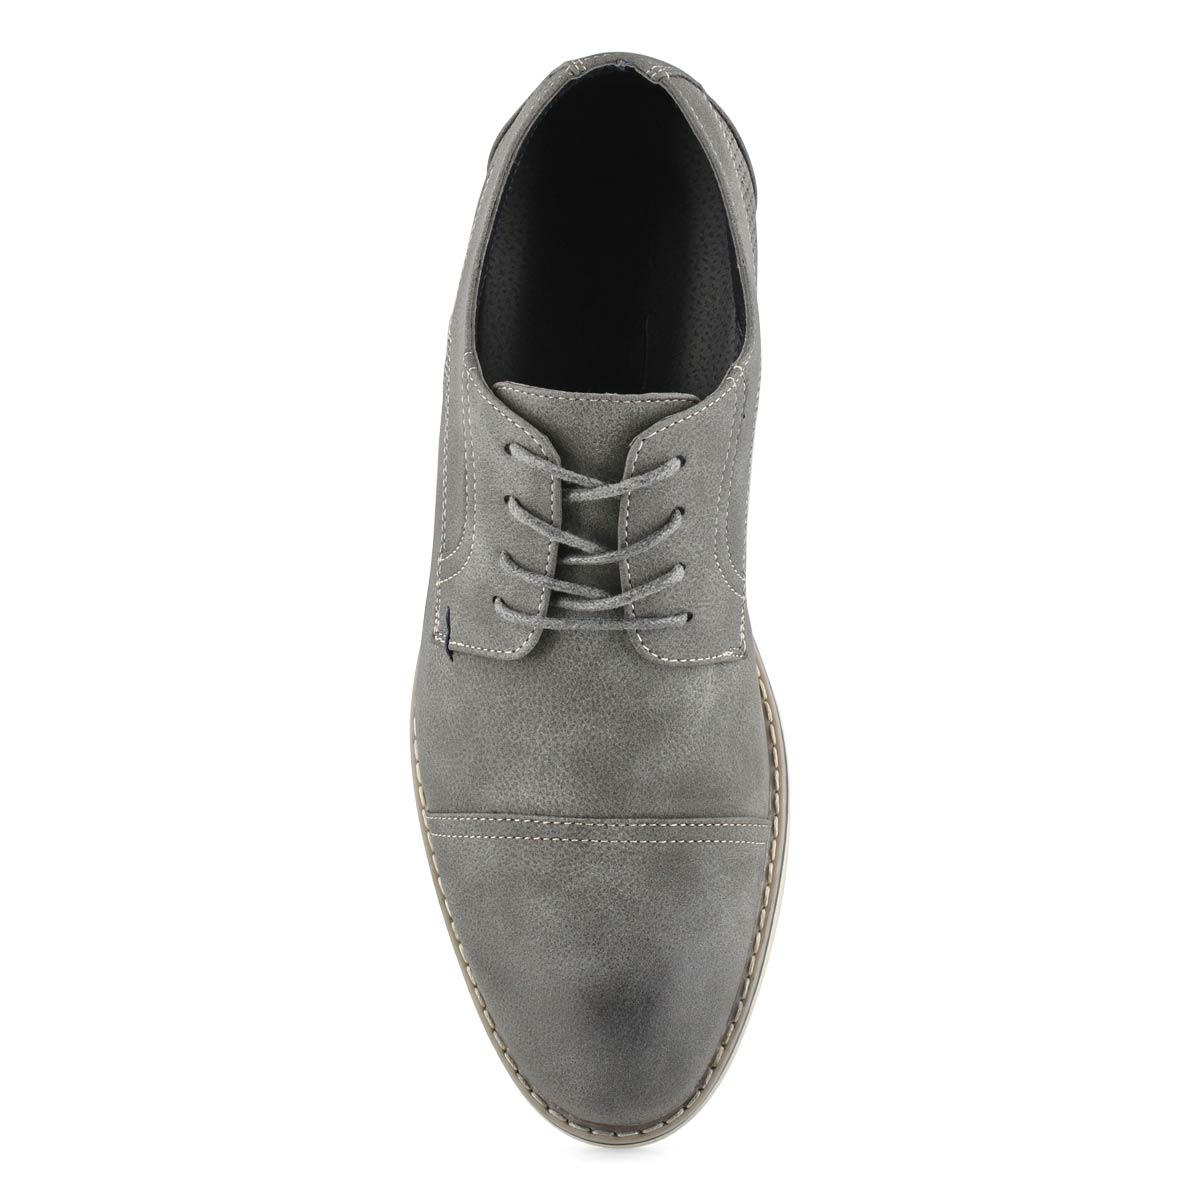 Mns Jack2 grey lace up casual oxford